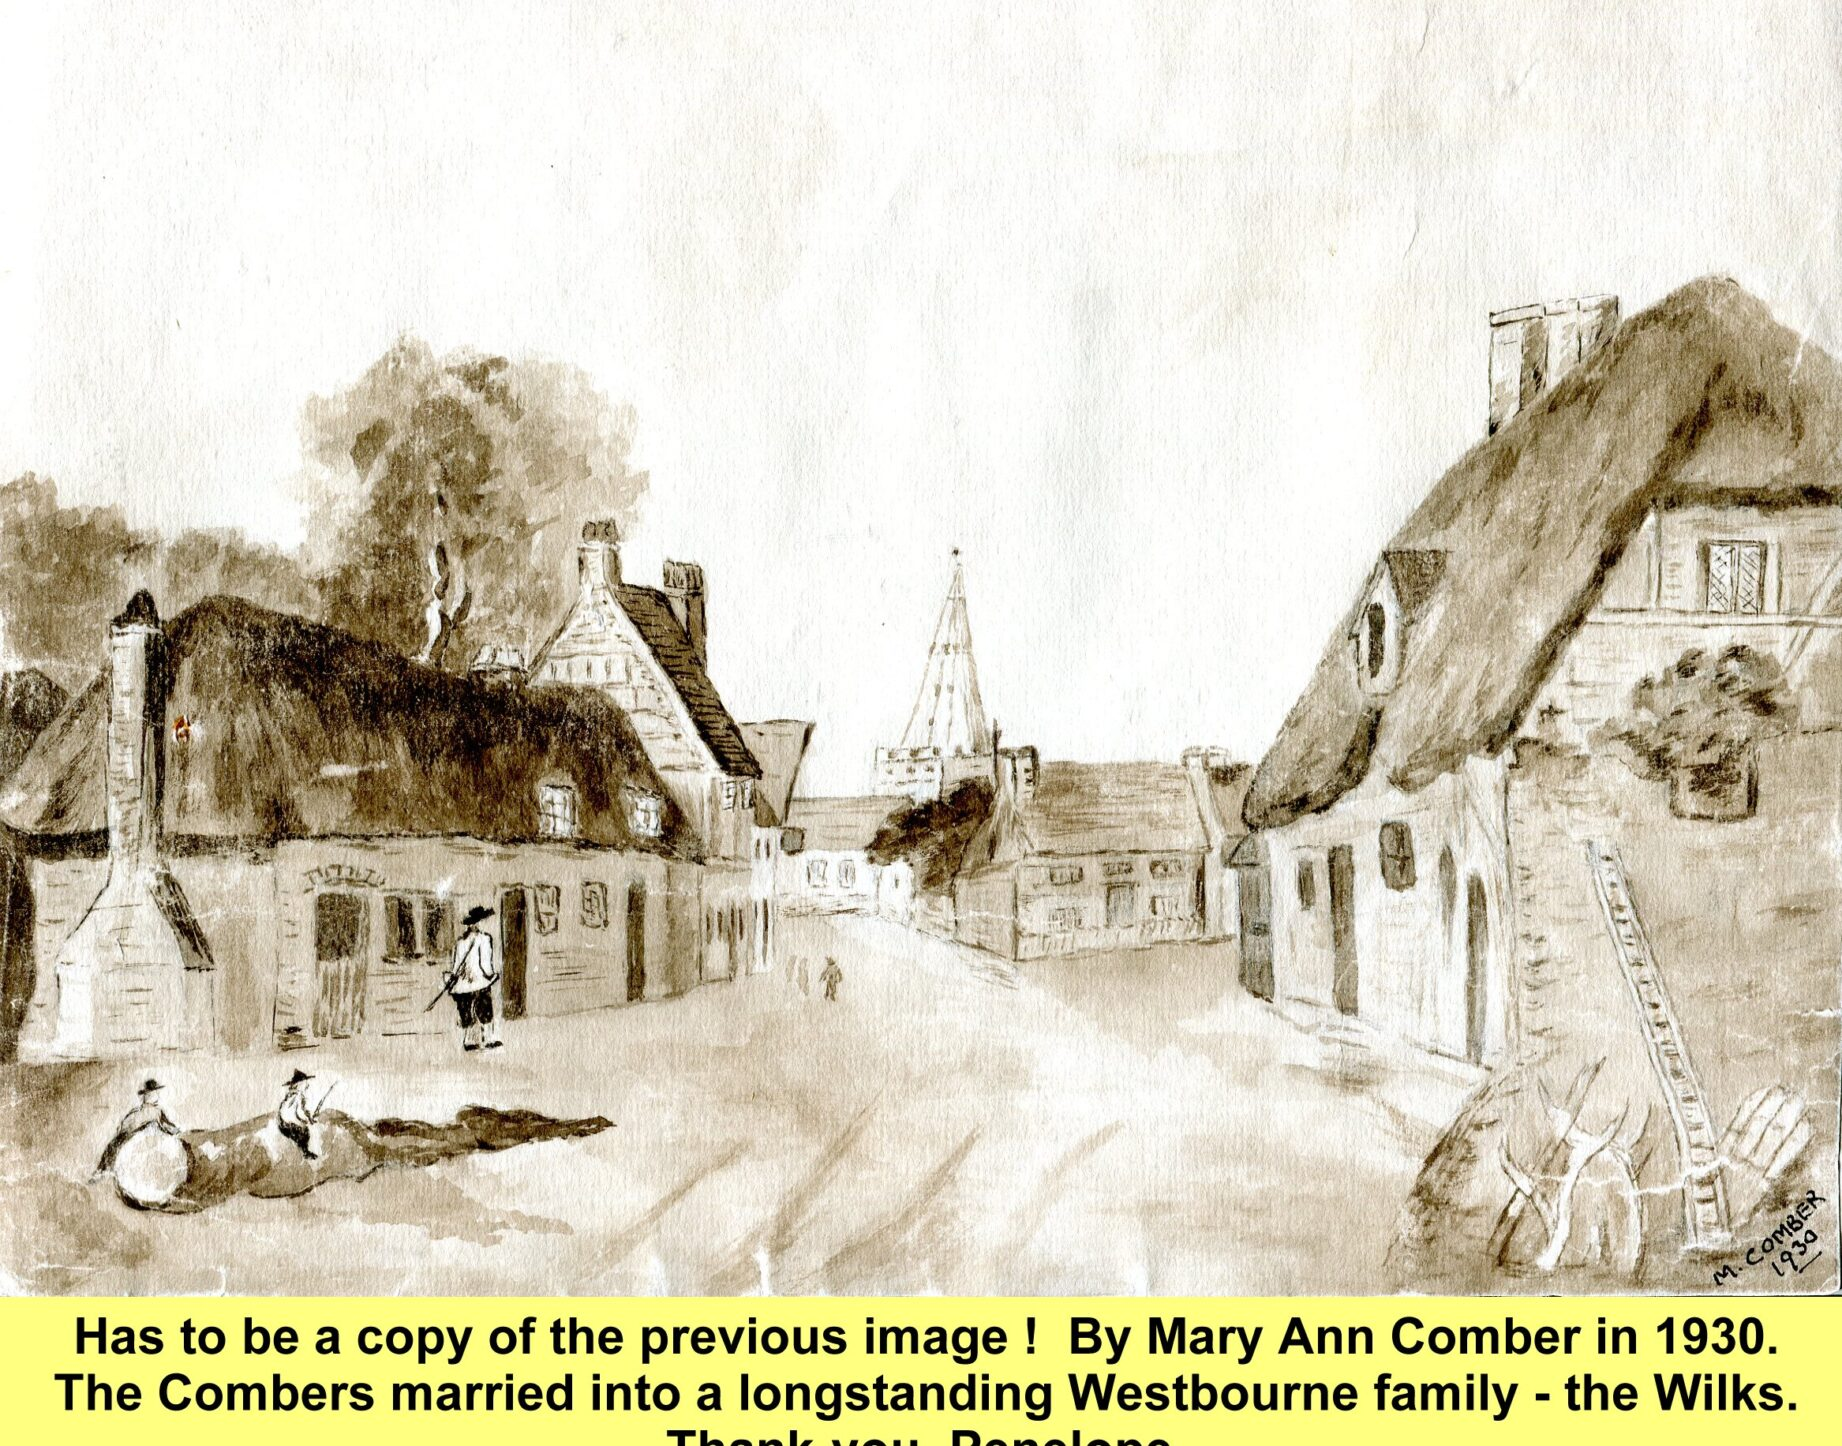 WESTBOURNE HISTORY PHOTO, COMBER, WILKS, SQUARE, CHURCH TOWER